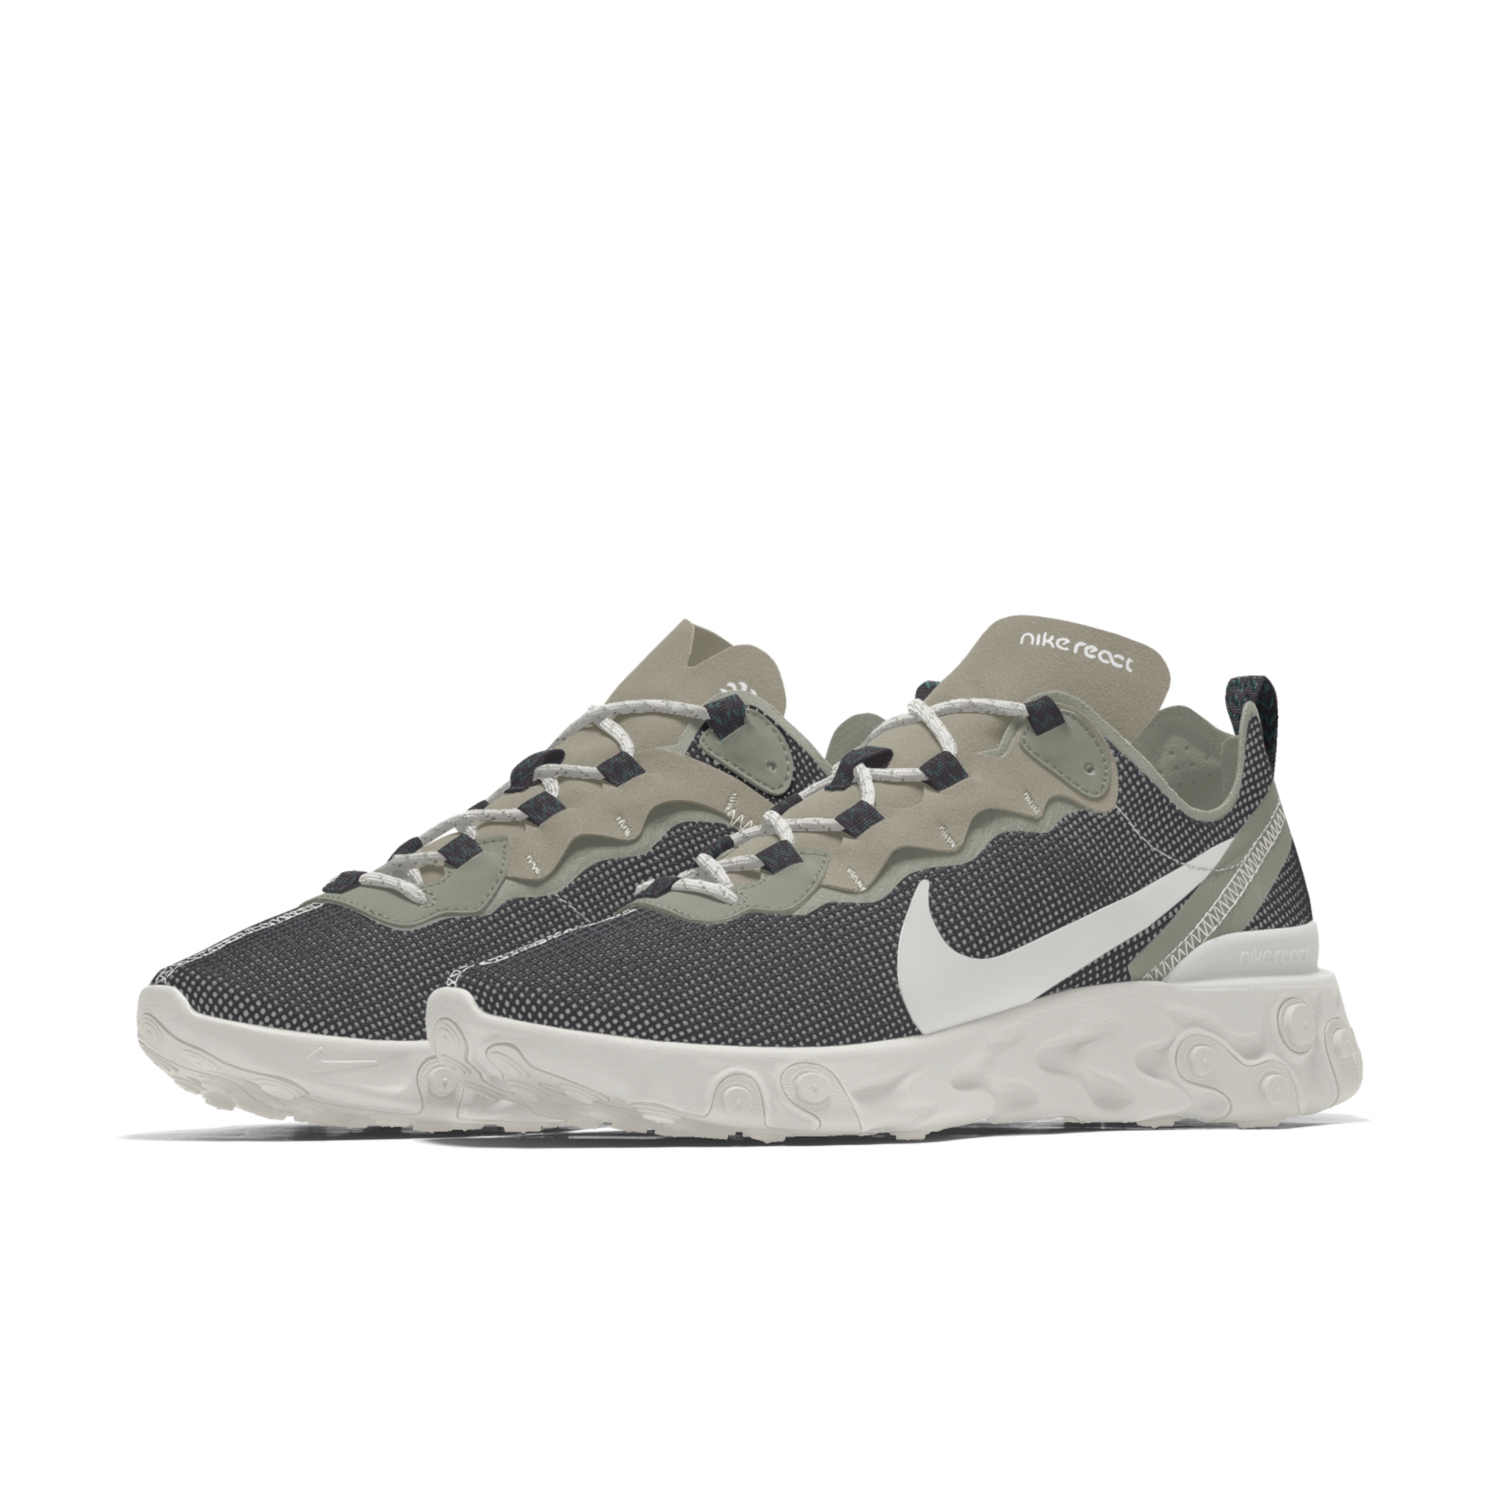 Bemi Shaw Nike React Element 55 trainer side on